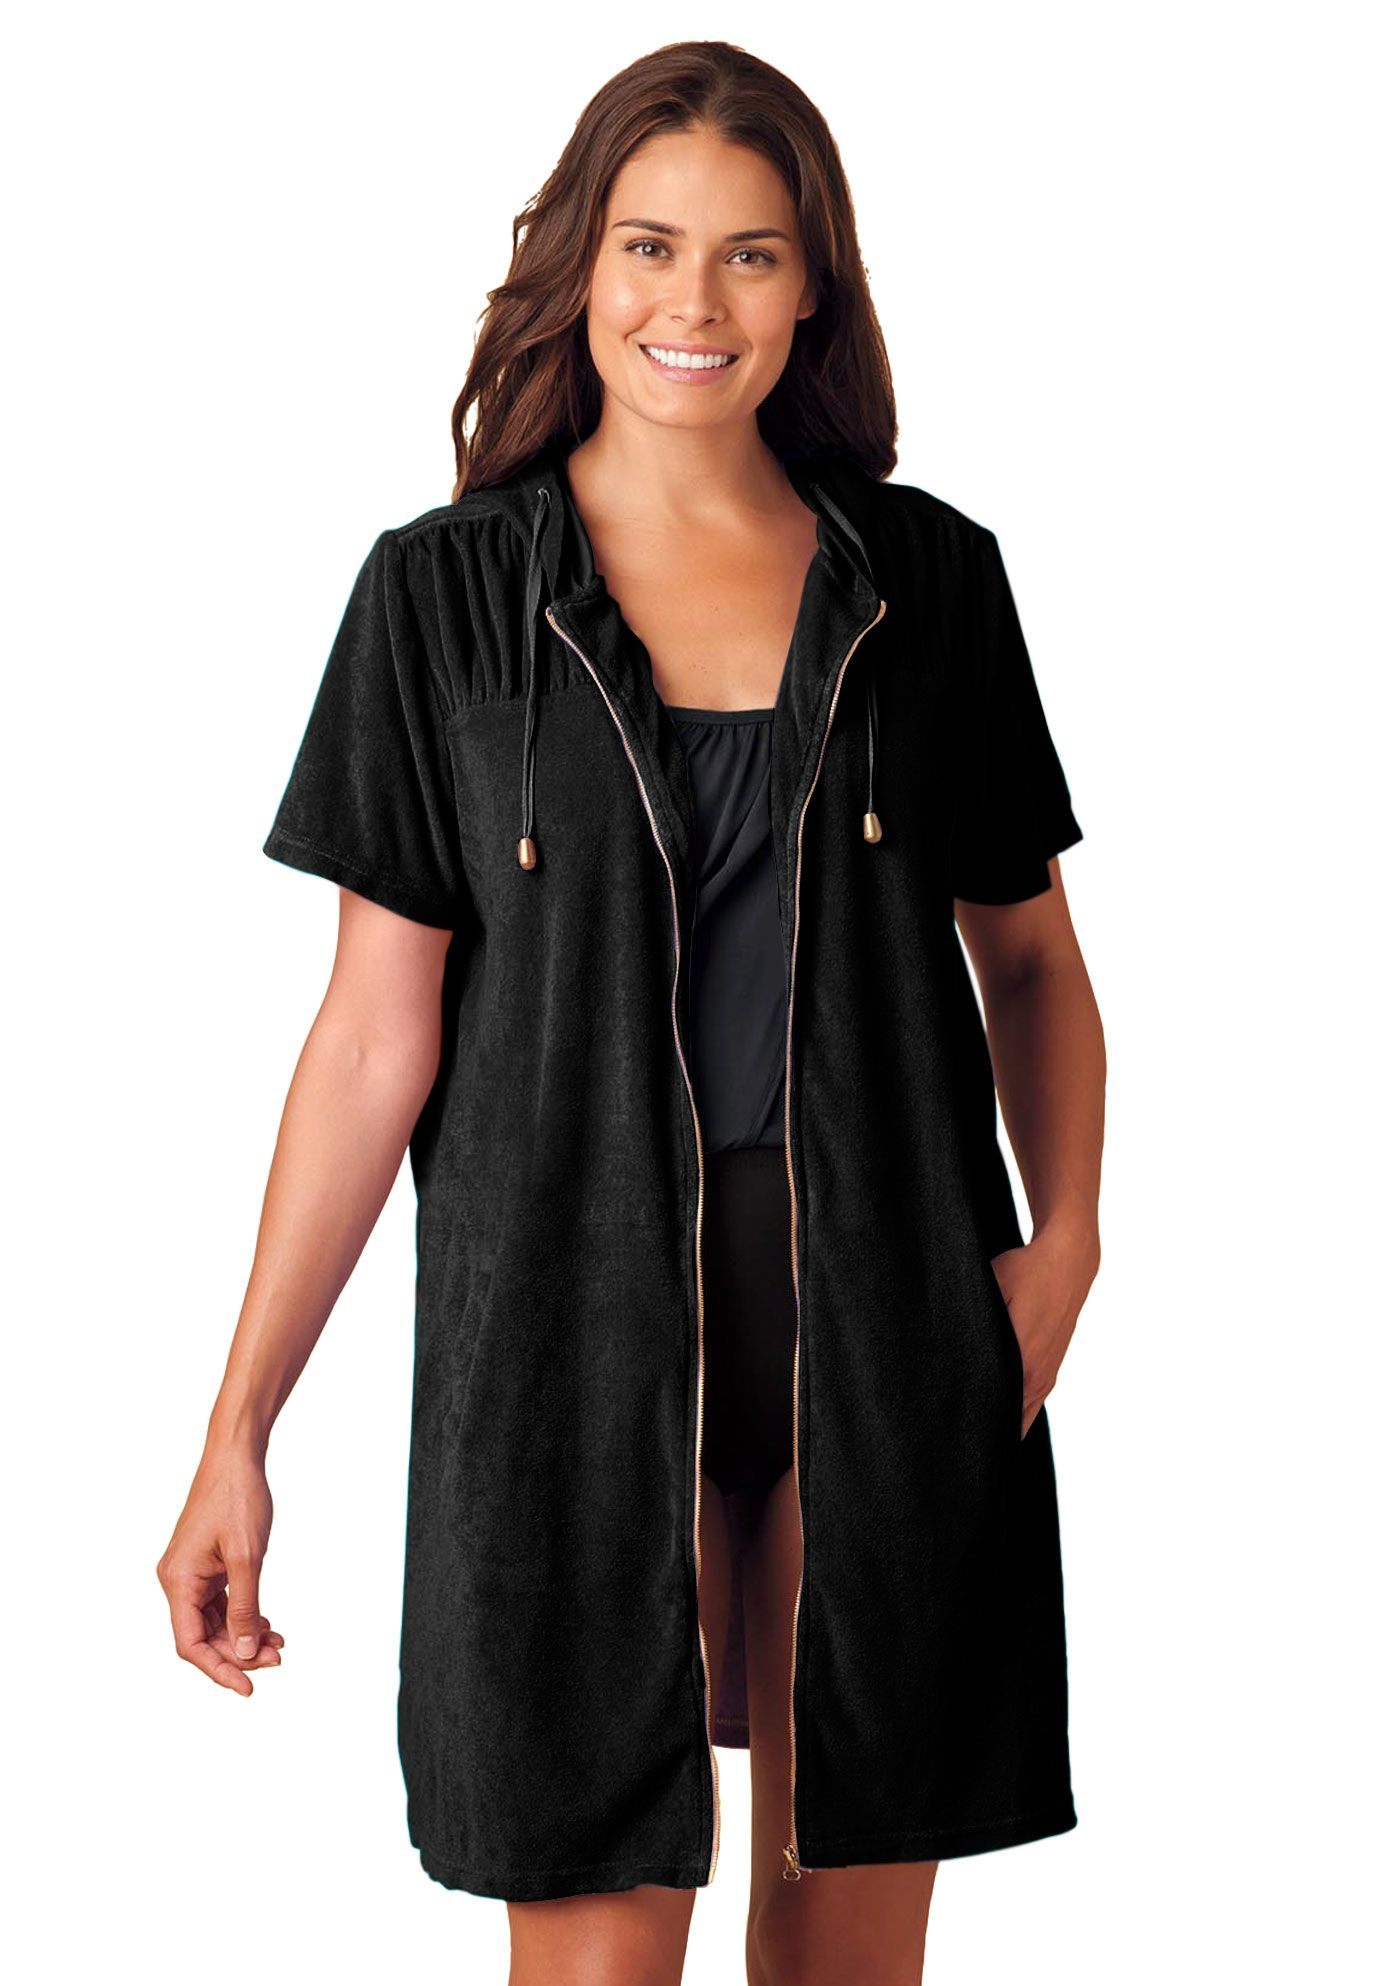 b5782574400 Cover-up for swimsuit, hooded in terrycloth | Plus Size Swimsuit Coverups |  fullbeauty.com